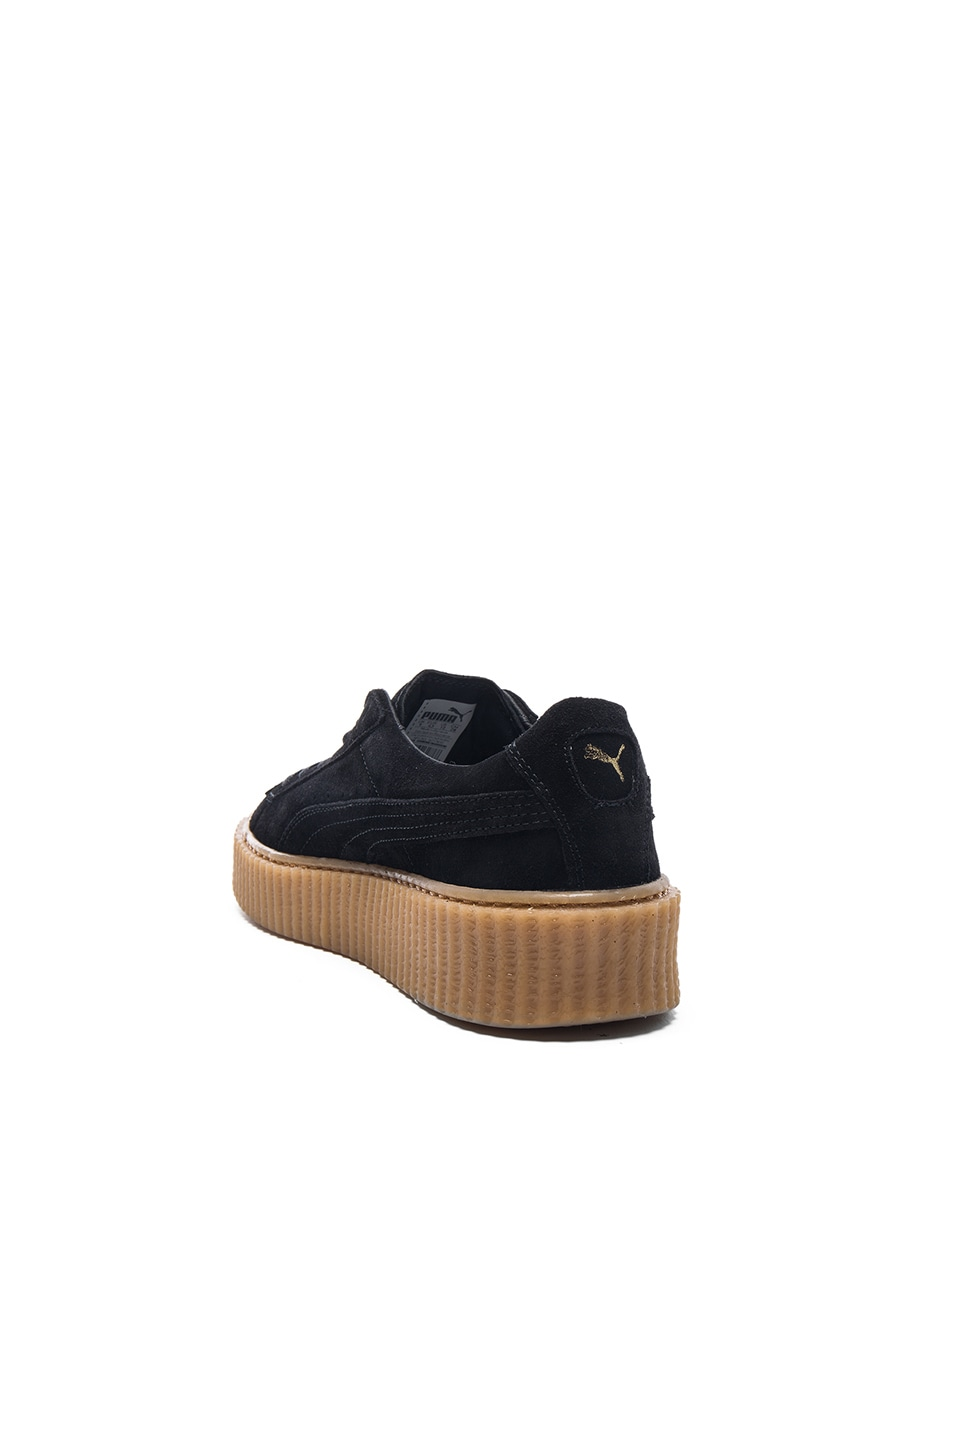 Image 3 of Puma by Rihanna Creepers in Black